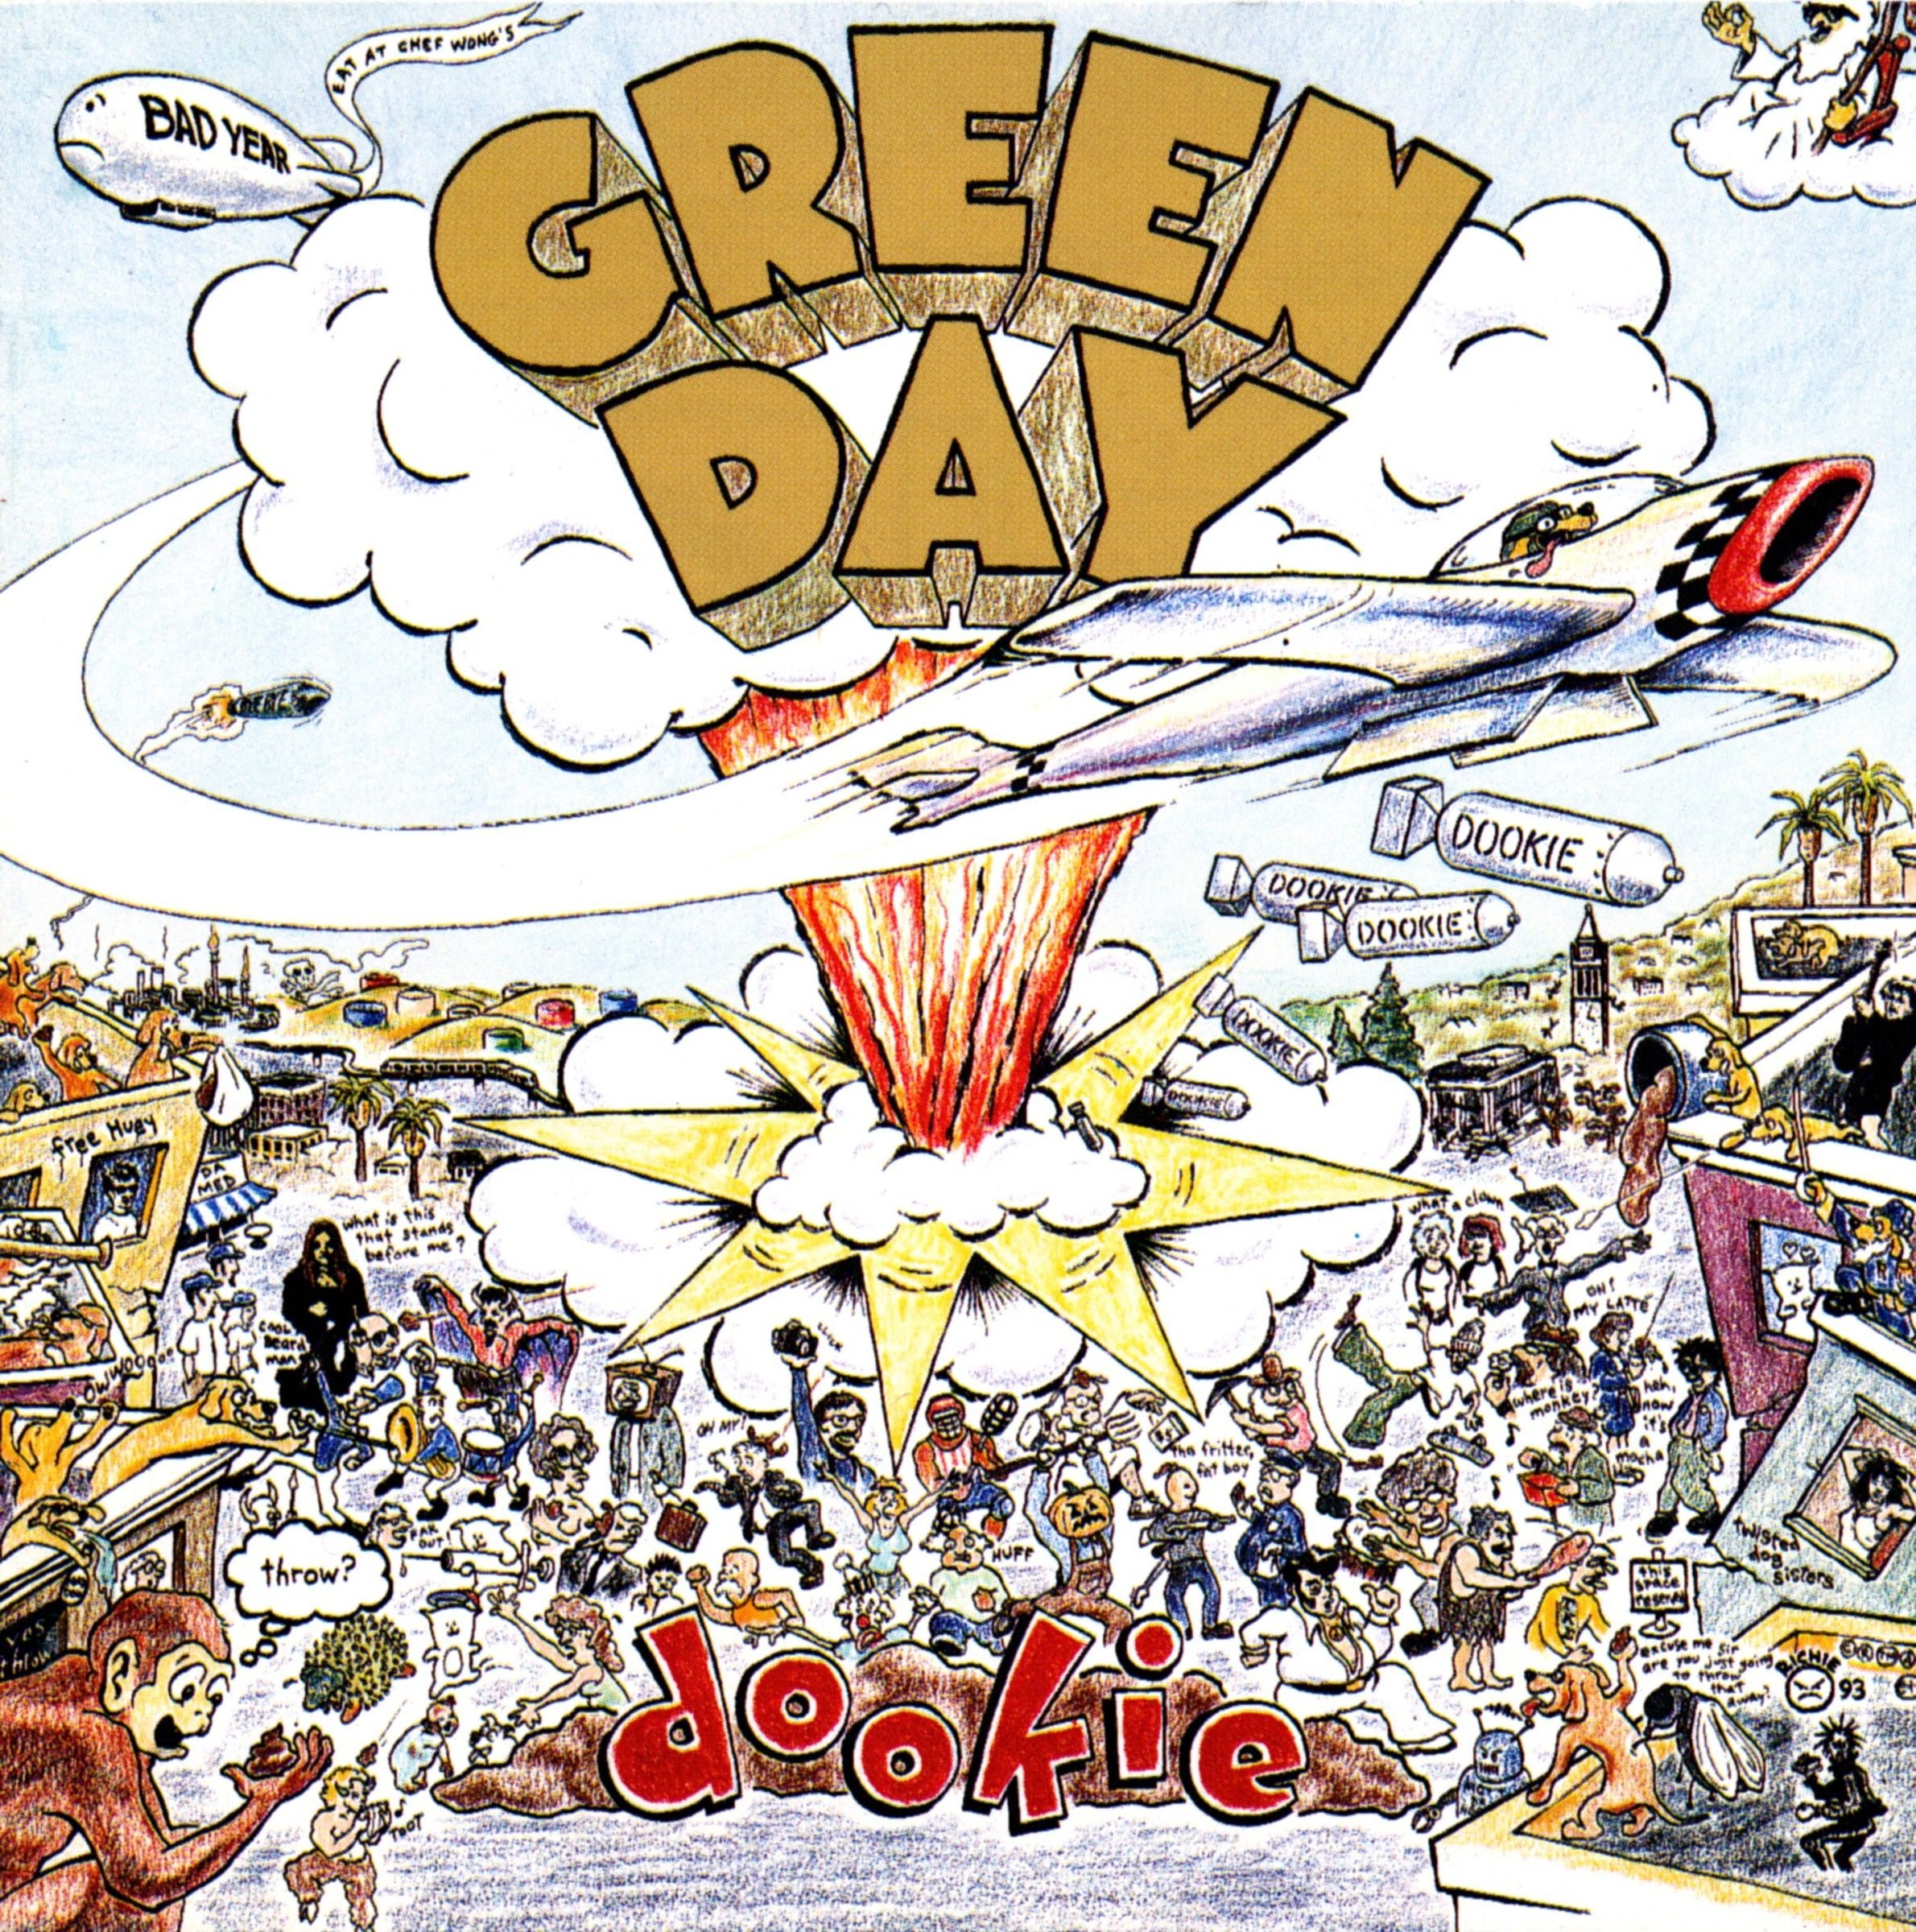 Cover Stories Green Day Dookie Green Day Albums Green Day Dookie Album Cover Art